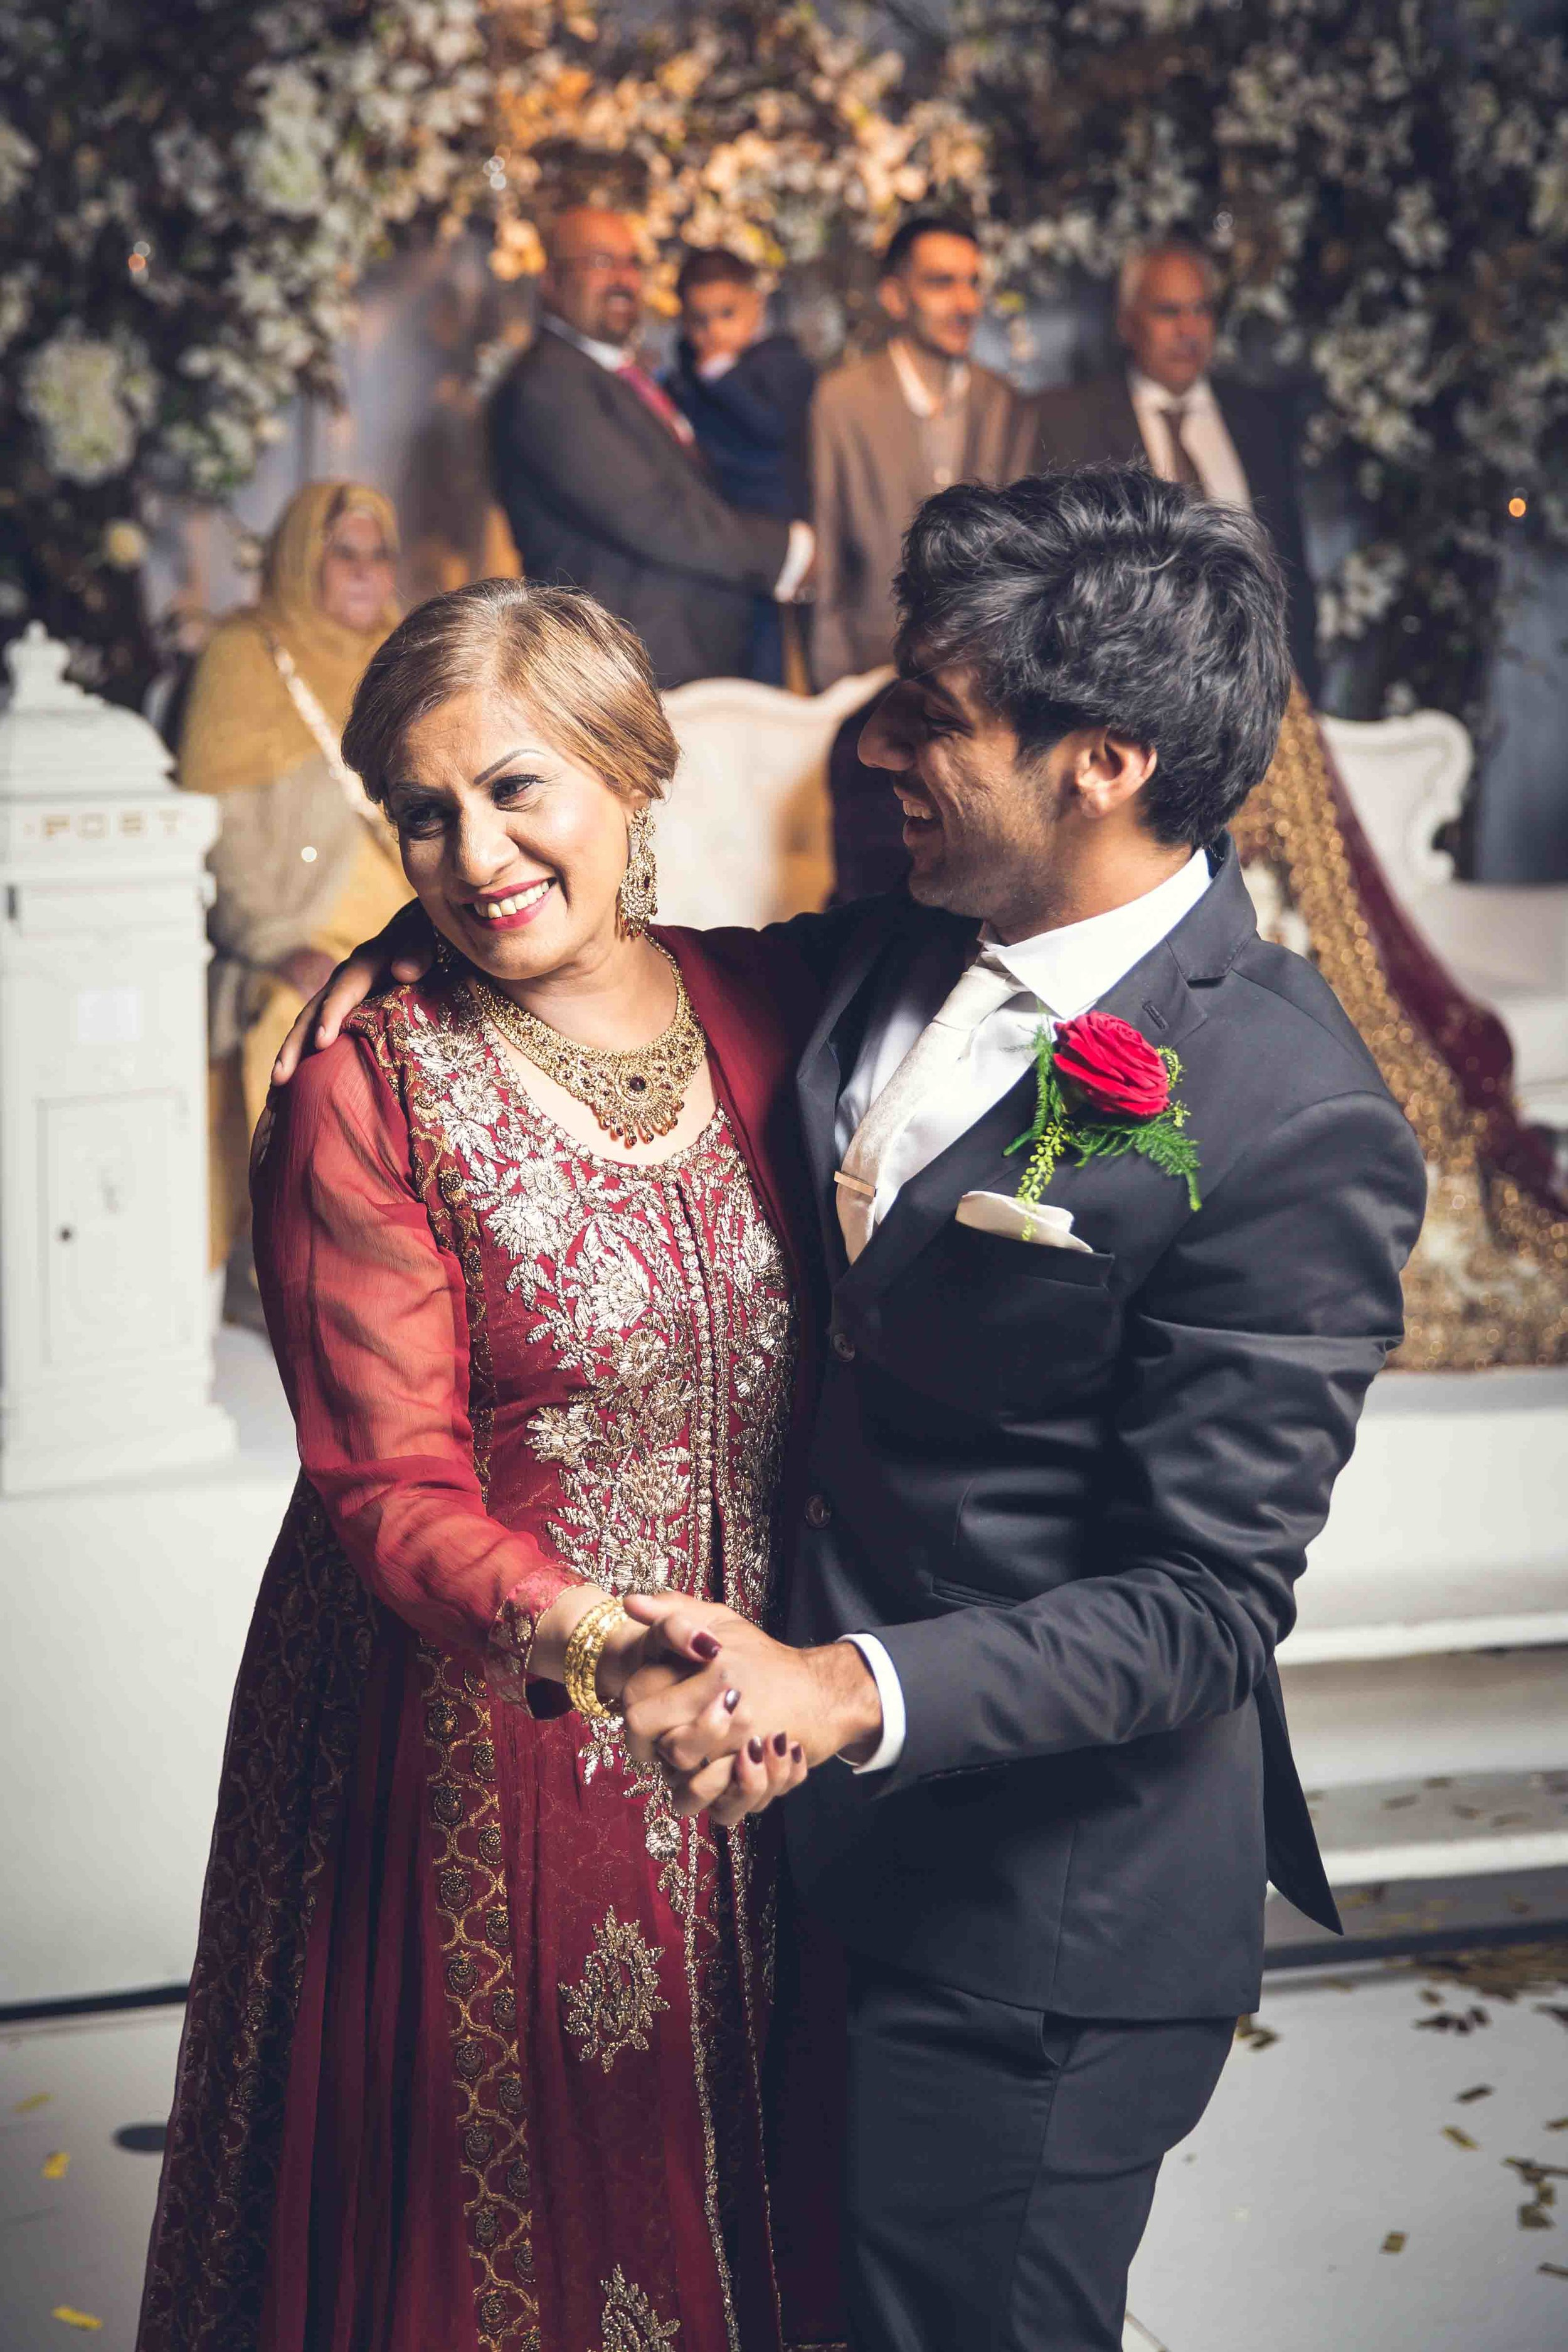 Asian Wedding Photographer Opu Sultan Photography Lyme Park Scotland Edinburgh Glasgow London Manchester Liverpool Birmingham Wedding Photos prewed shoot Azman & Saira Blog-146.jpg